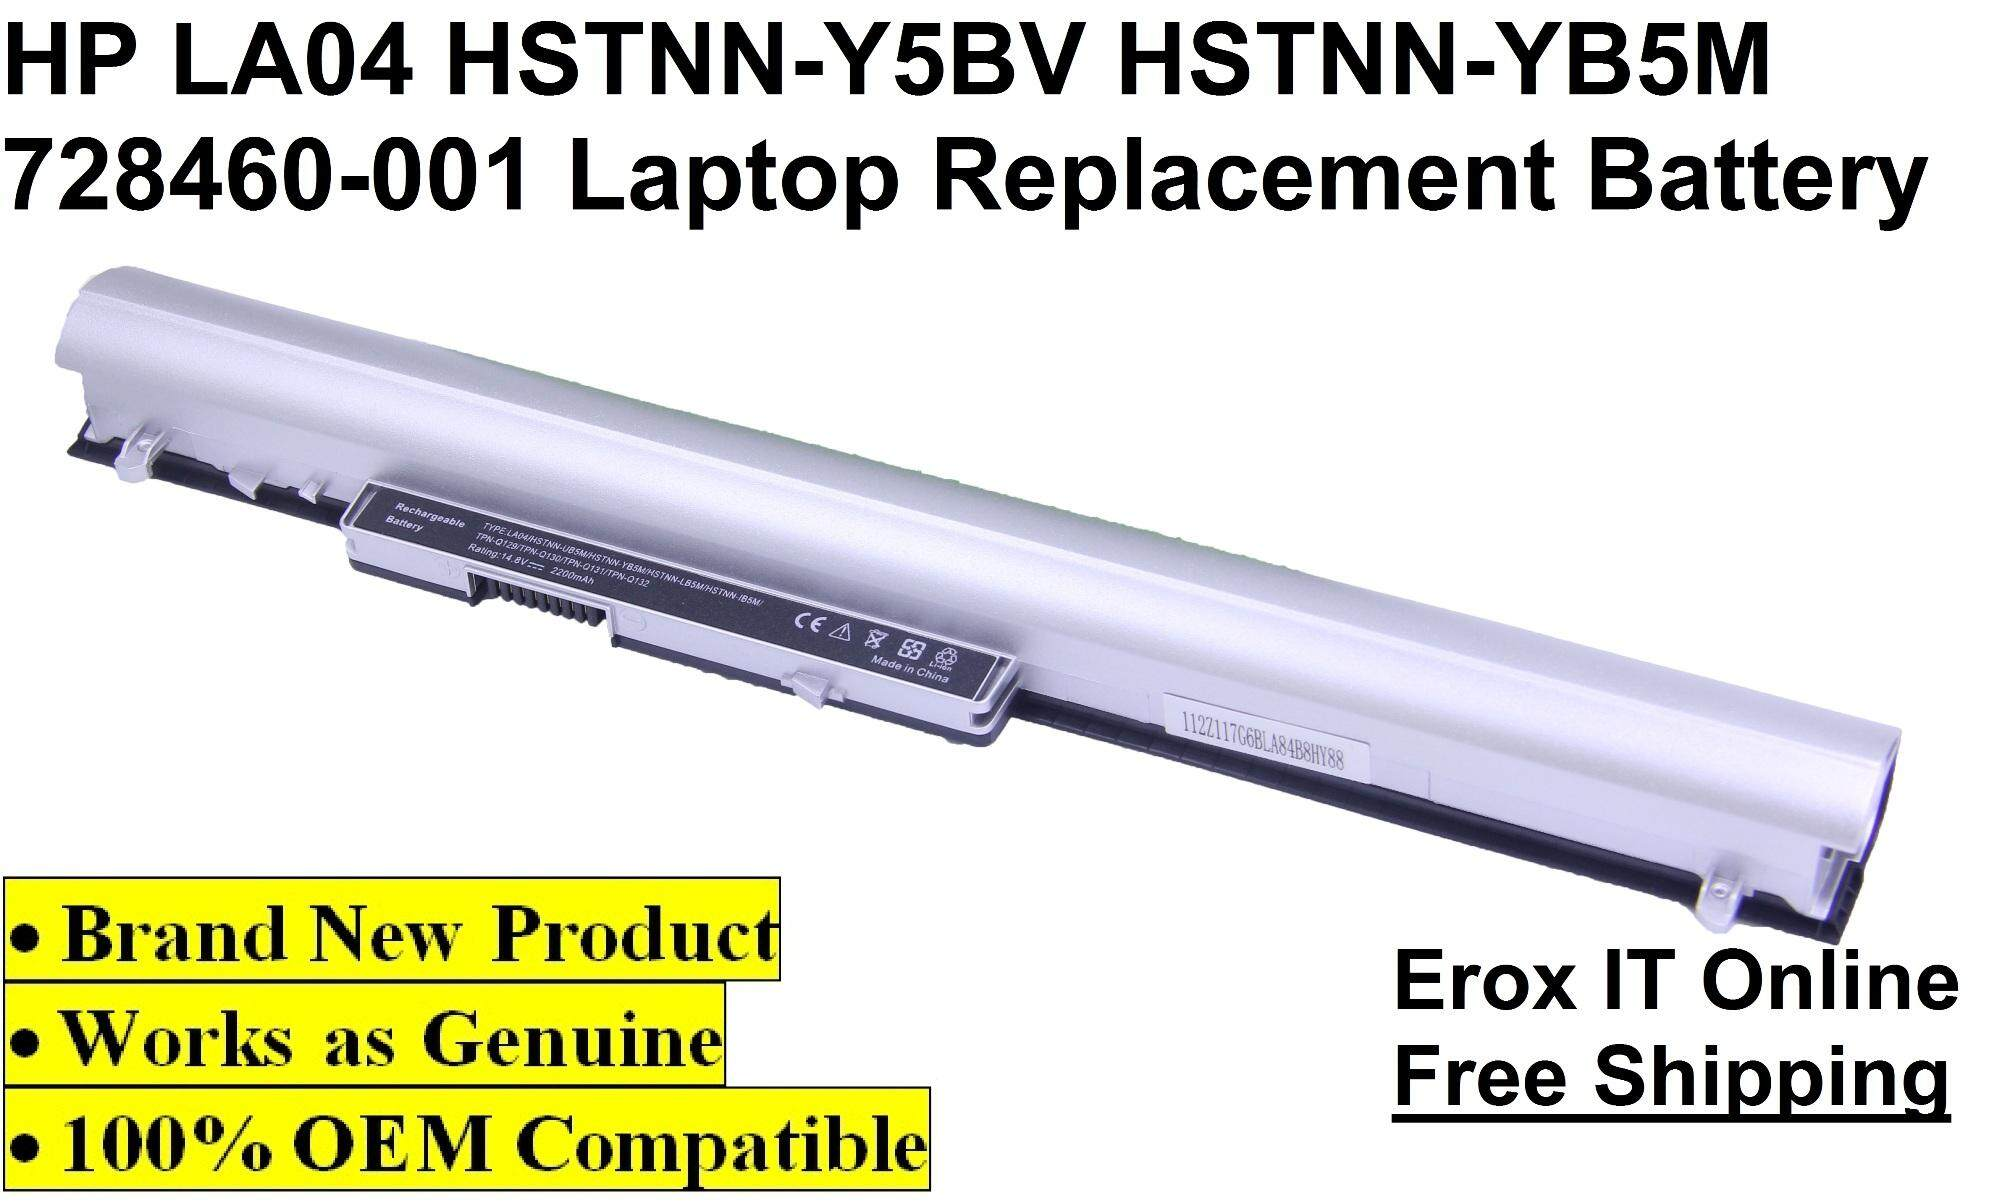 Batteries For Laptop Notebook With Best Price In Malaysia Baterai Cmos Cr1220 3v Cable Universal Utk Labtop Netbook Hp 728460 001 Battery La04 Oem Silver